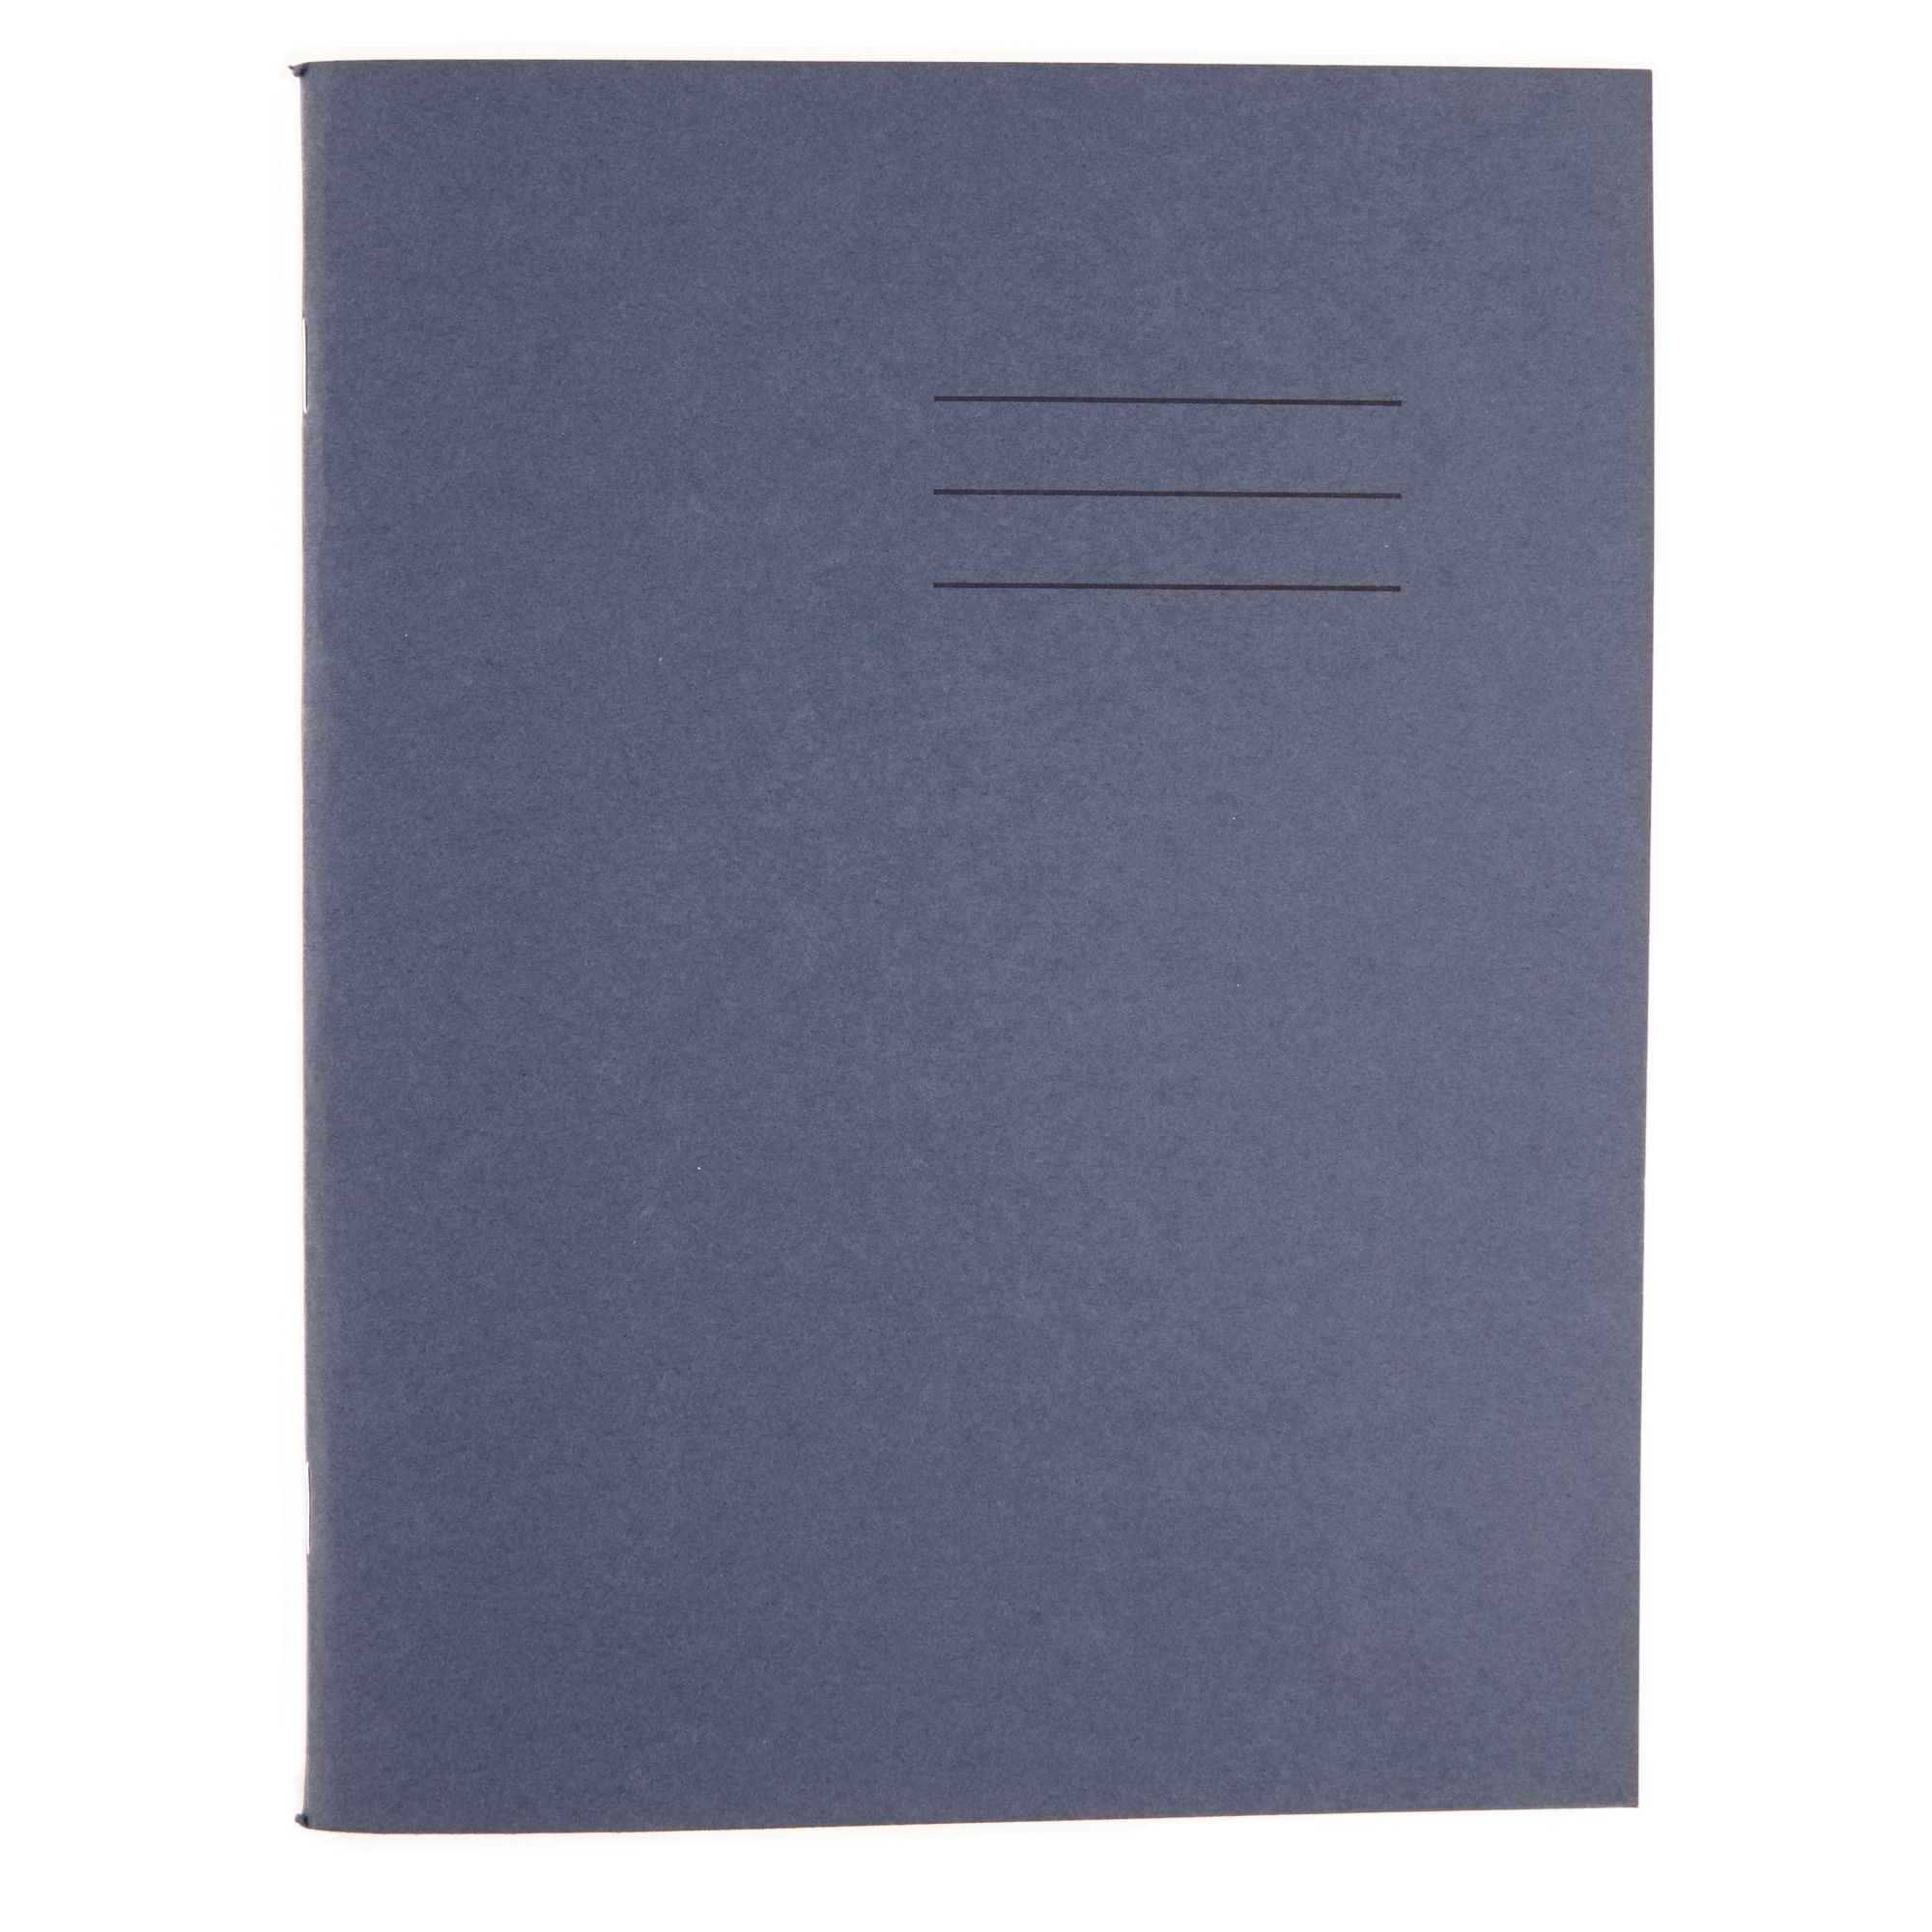 8x6.5 Exercise Book 32 Page Top Half Plain Bottom 12mm Ruled Blue (Pack of 100)